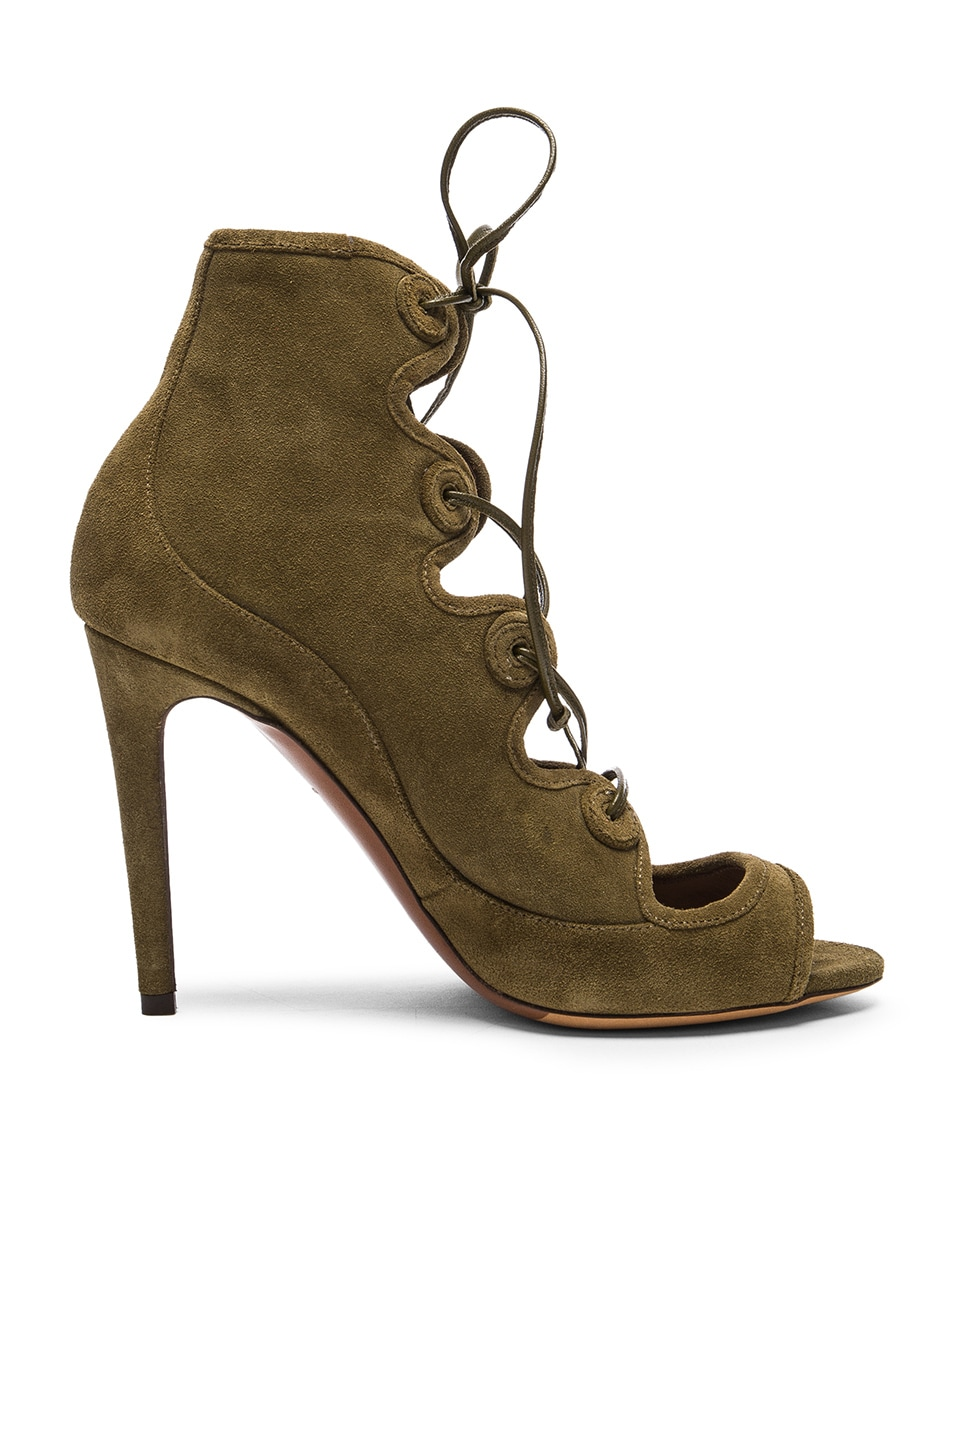 Image 1 of Tabitha Simmons Charlotte Heel in Khaki Suede